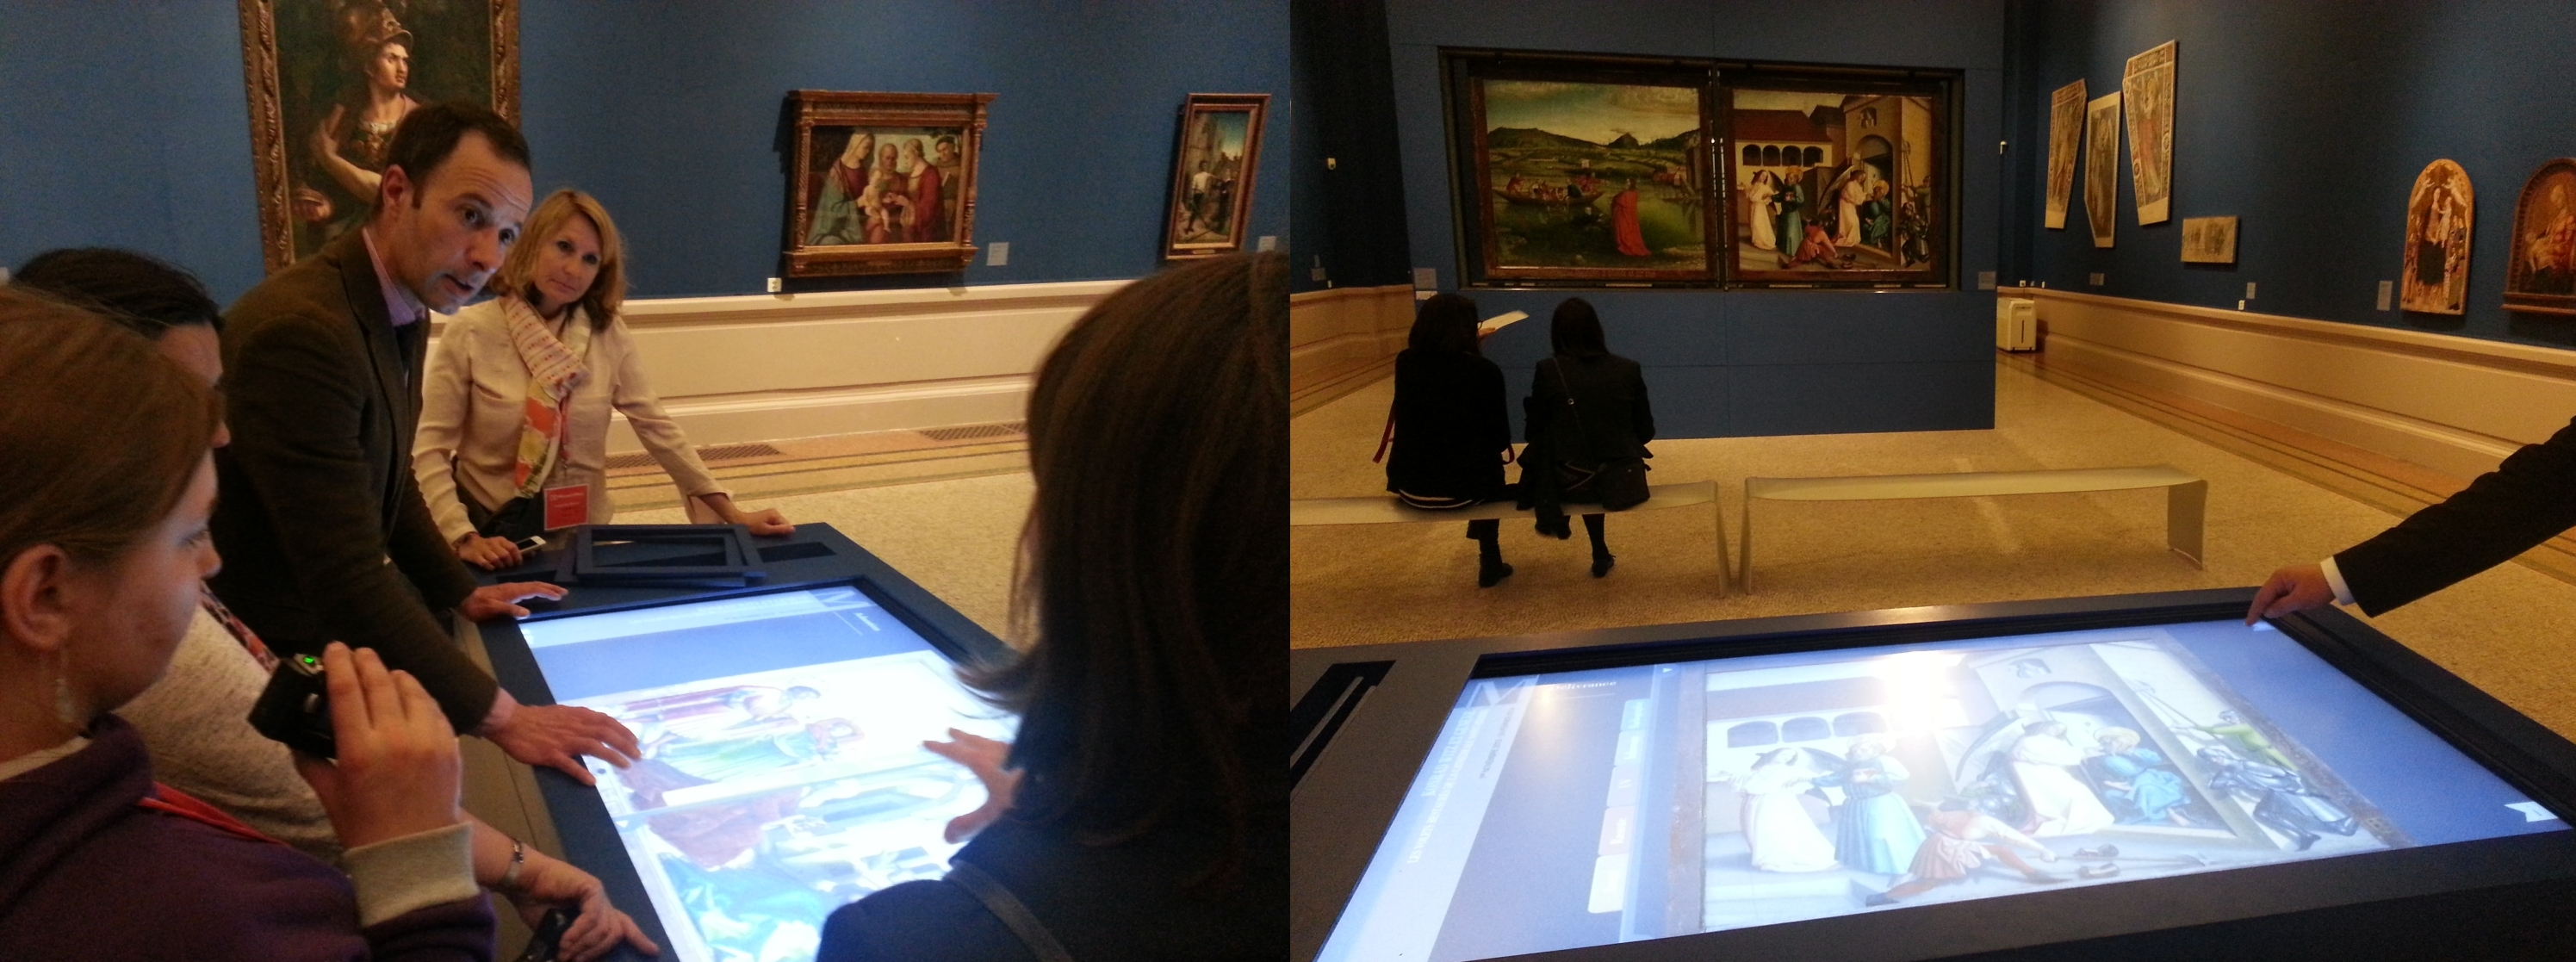 Interactive table showing the restoration and research about the altarpiece by Konrad Witz explained by David Matthey, Musée d'Art et d'Historie.